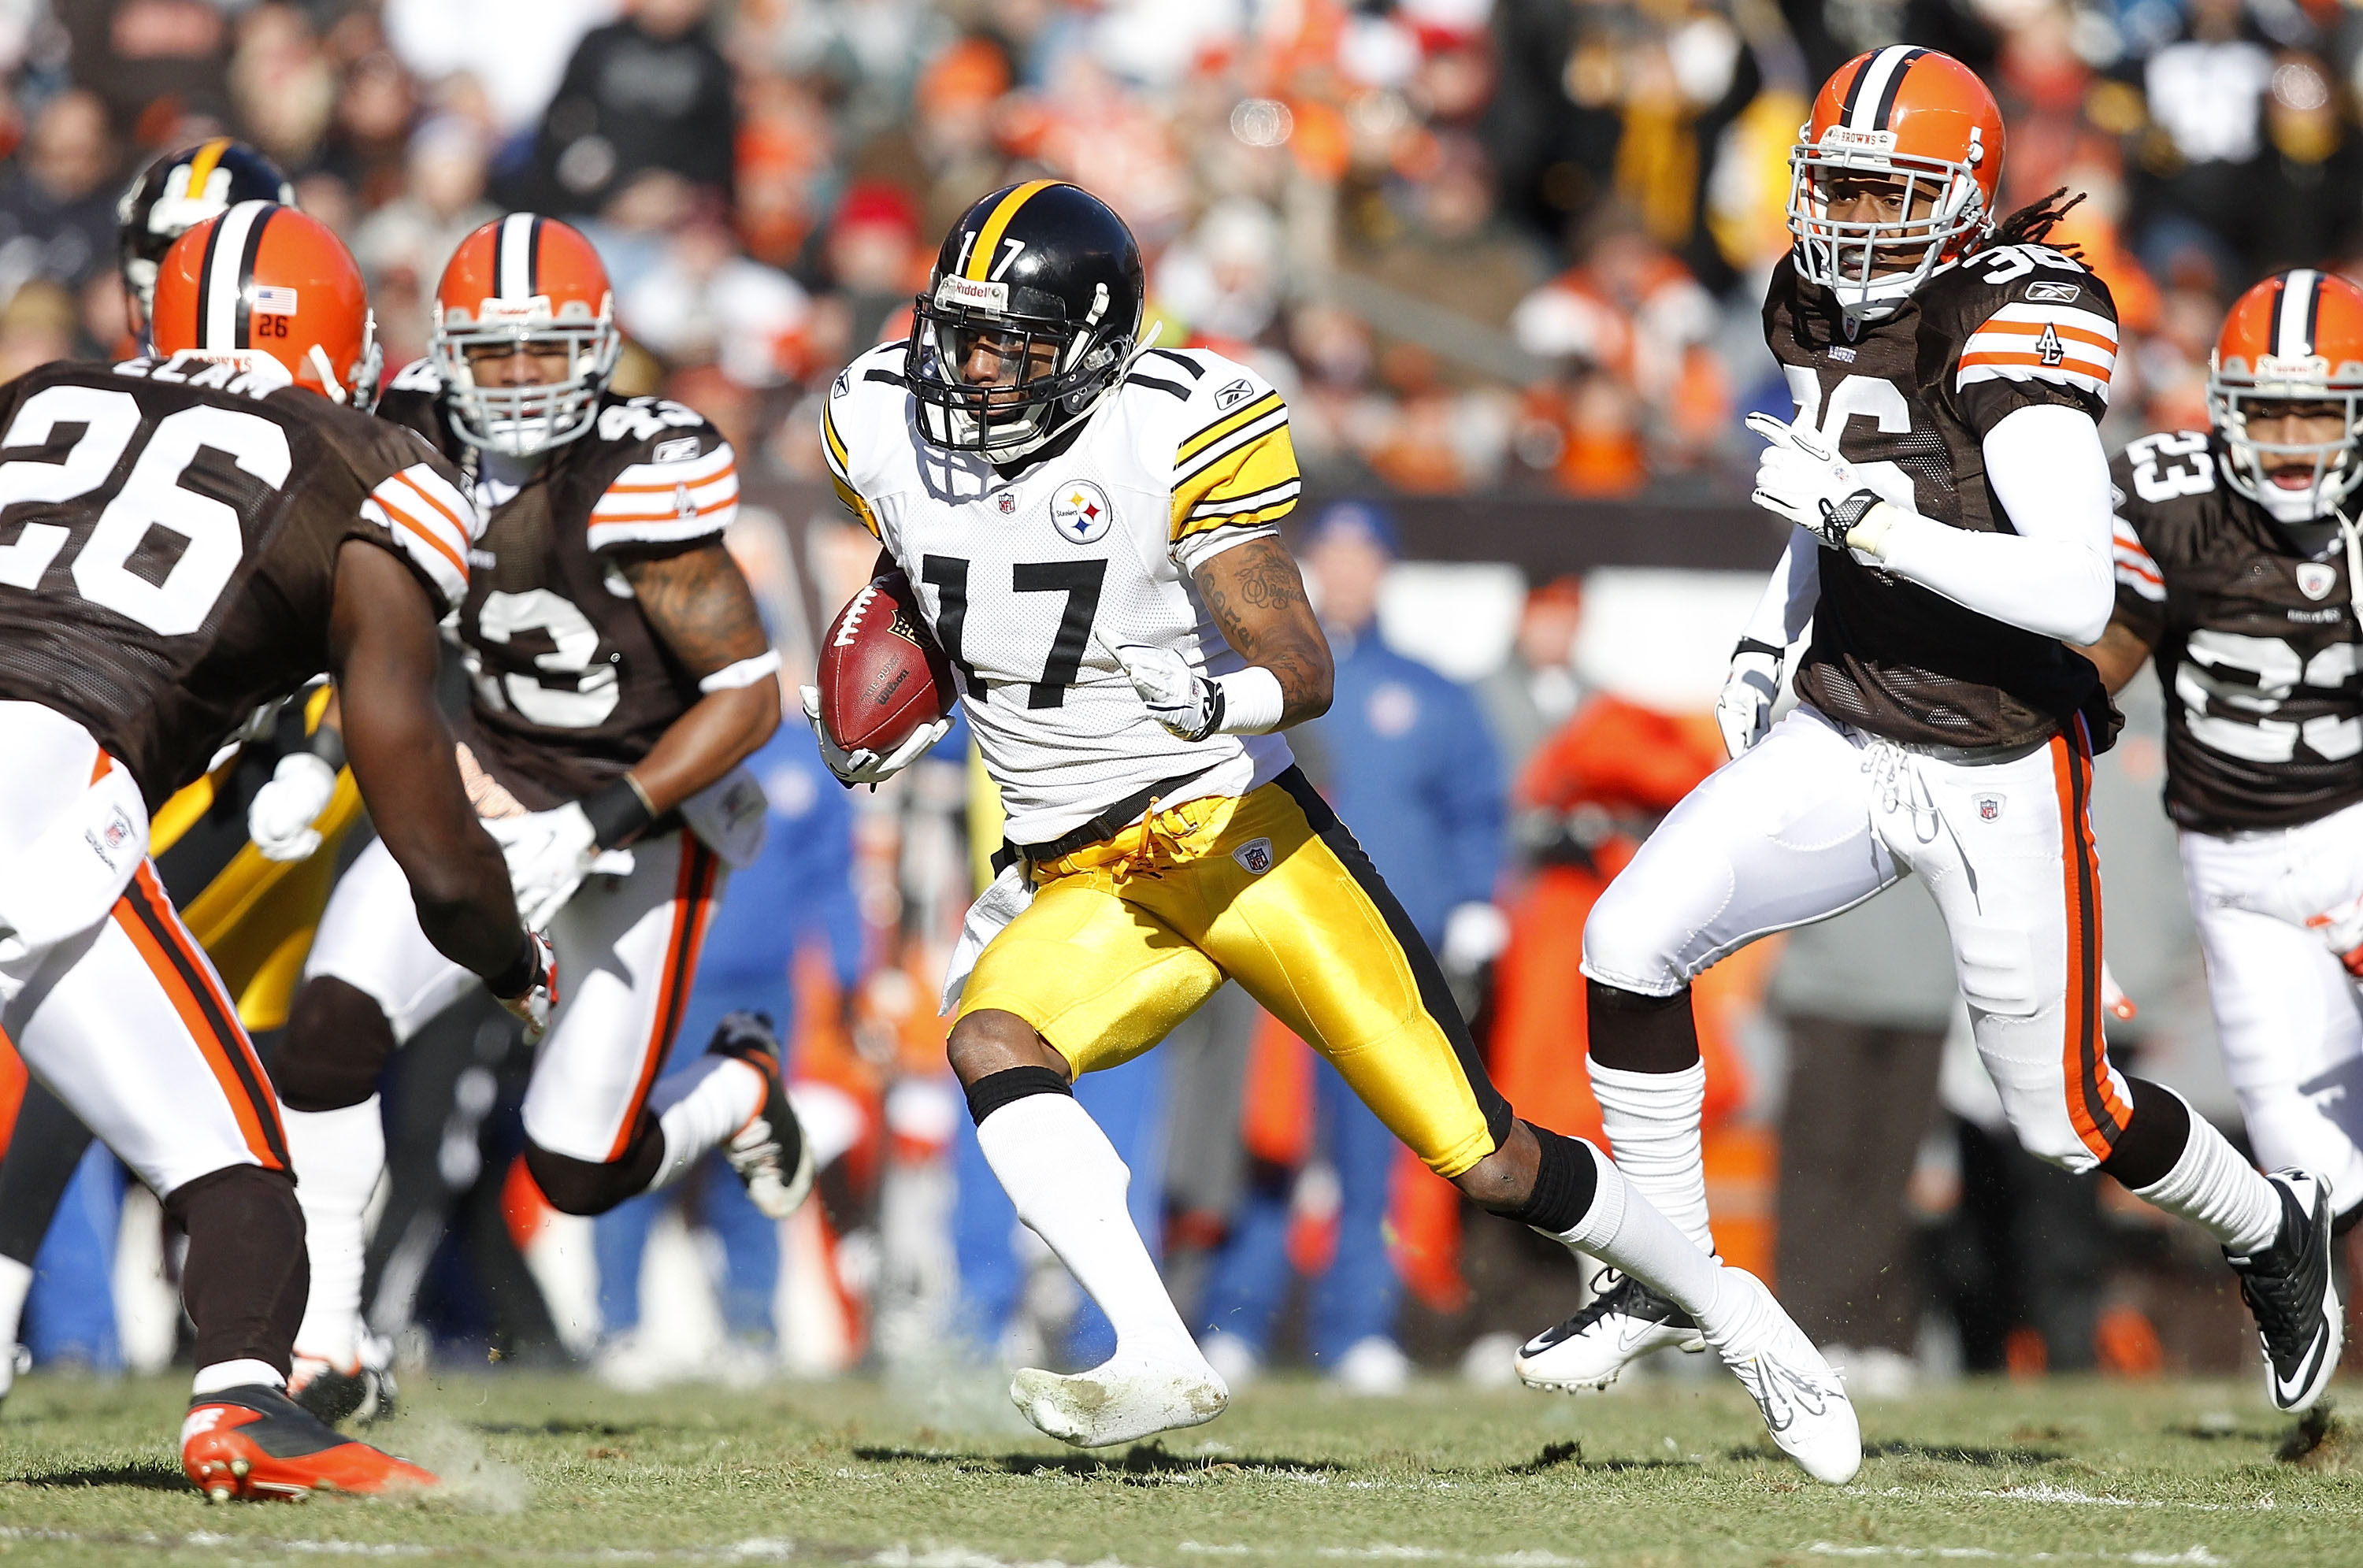 CLEVELAND, OH - JANUARY 02:  Wide receiver Mike Wallace #17 of the Pittsburgh Steelers runs the ball past defensive back Abram Elam #26, T.J. Ward #43 and Coye Francies #36 of the Cleveland Browns at Cleveland Browns Stadium on January 2, 2011 in Clevelan